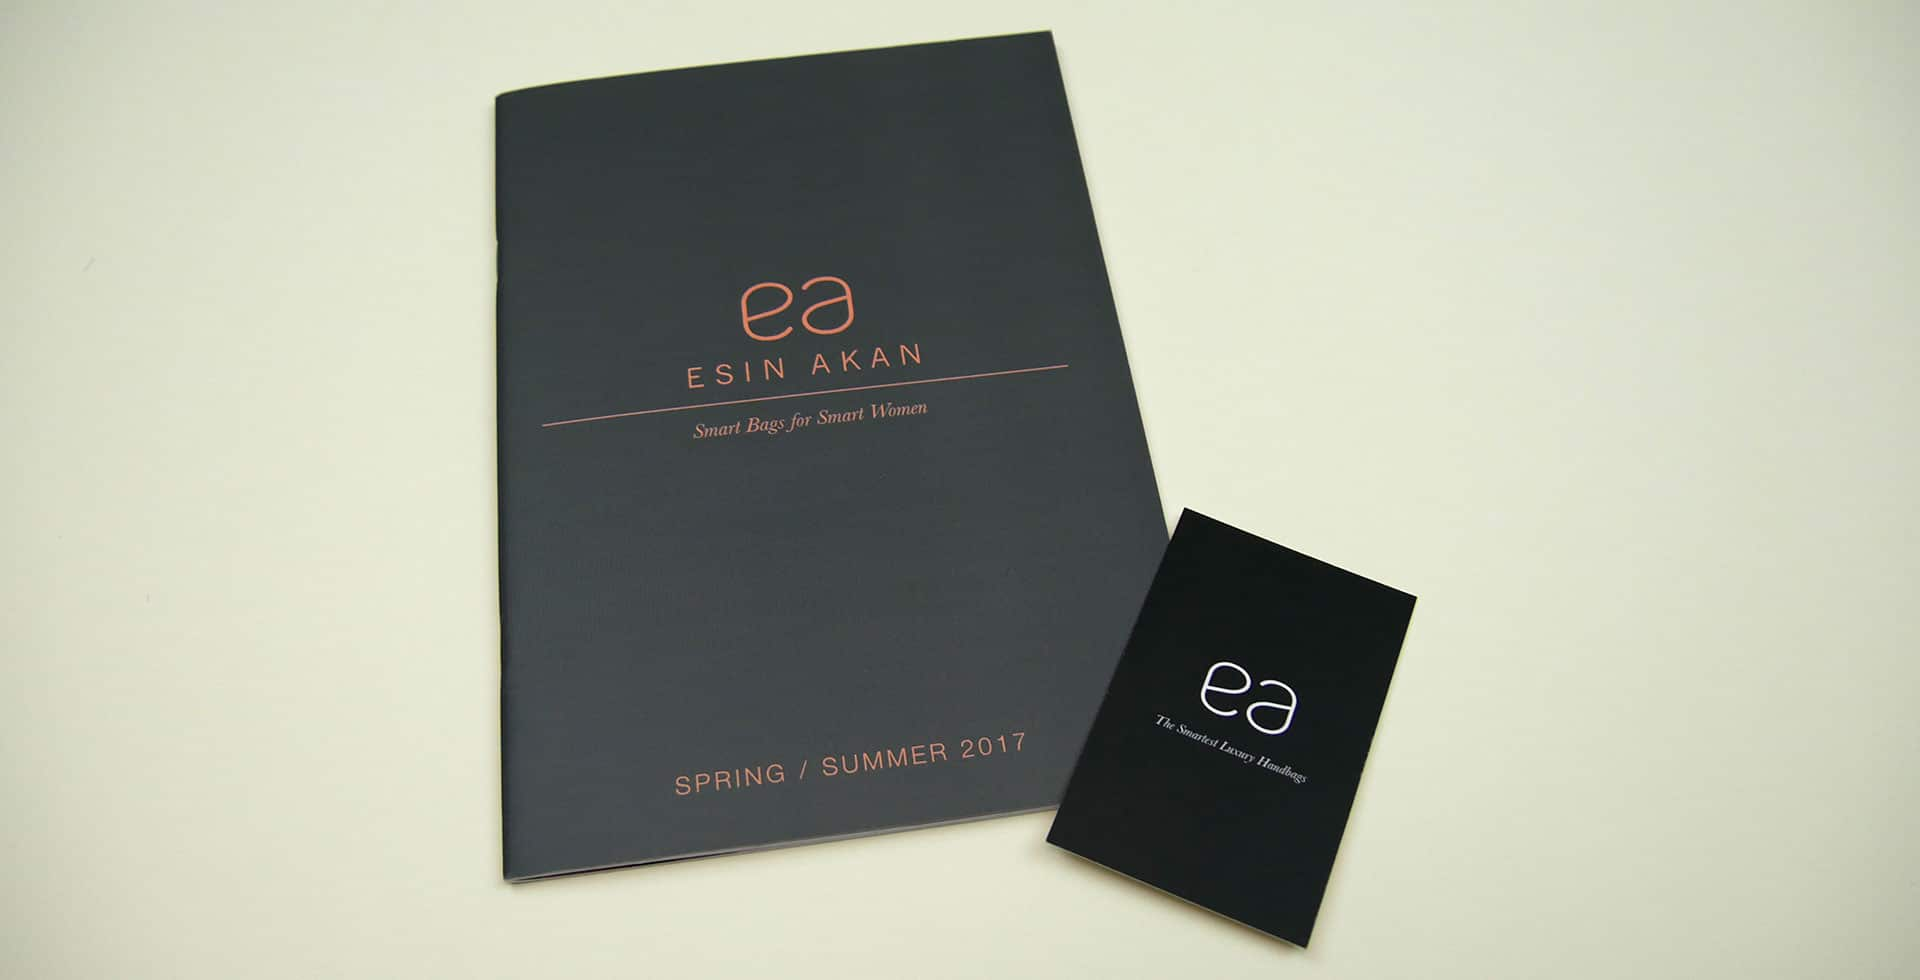 Esin Akan SS17 Look book and Business Cards